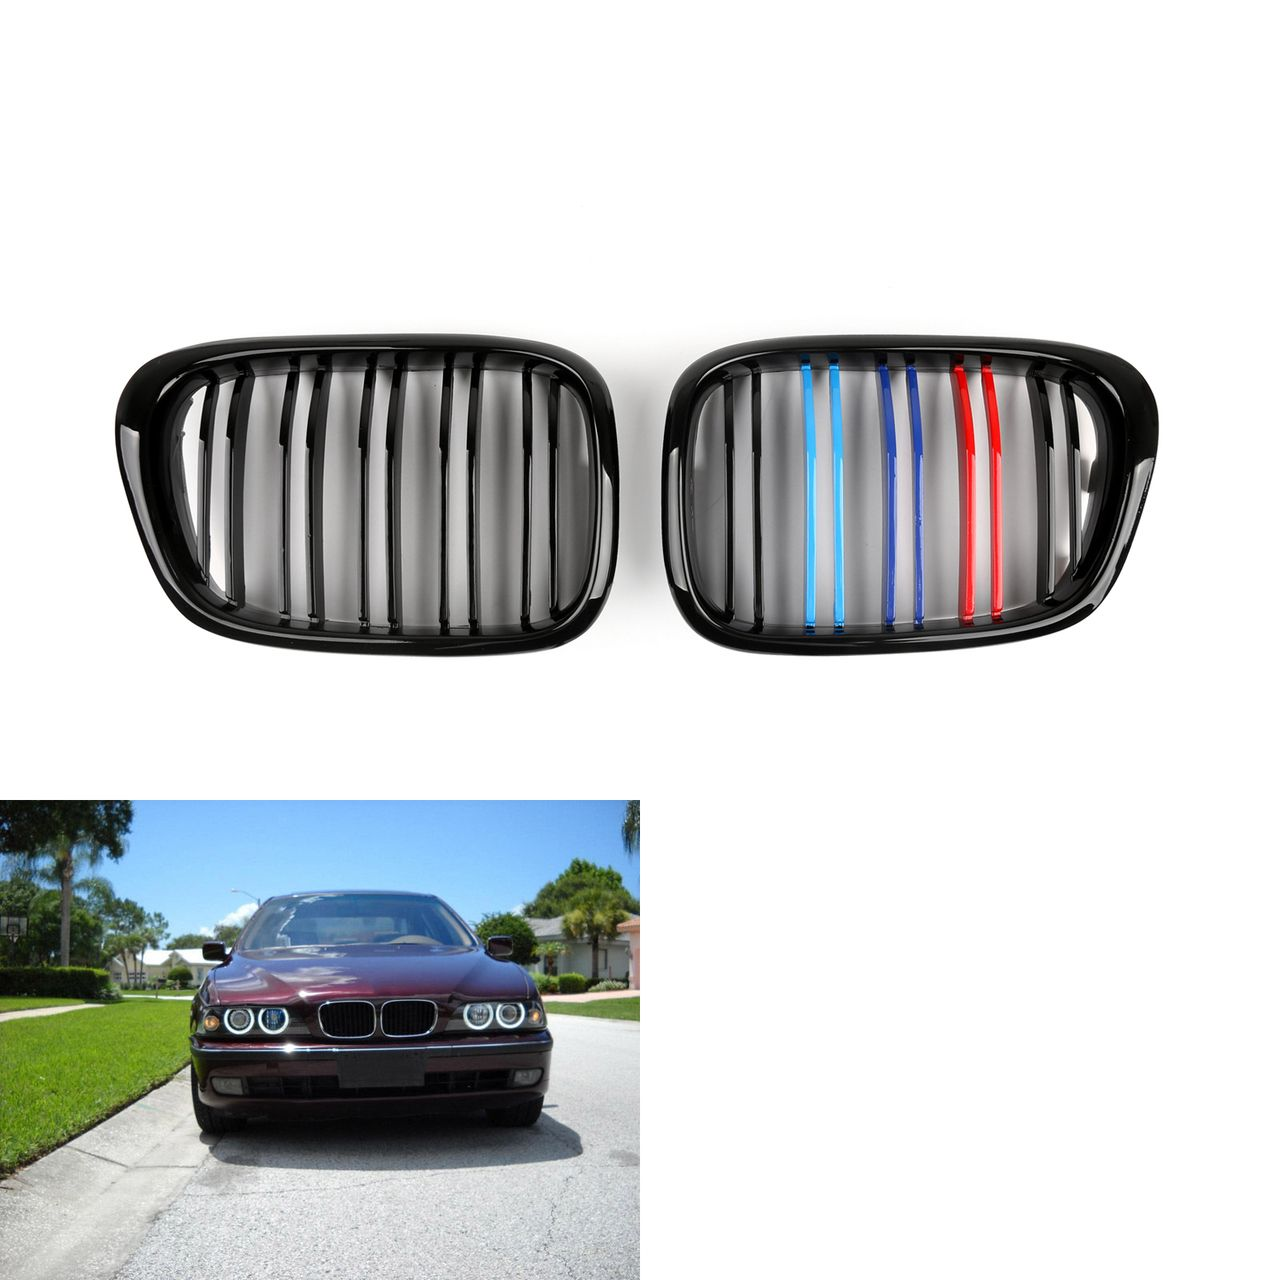 Kidney Grille Grill M Color Bmw 5 Series E39 1996 2004 Bmw 5 Series Bmw M Color